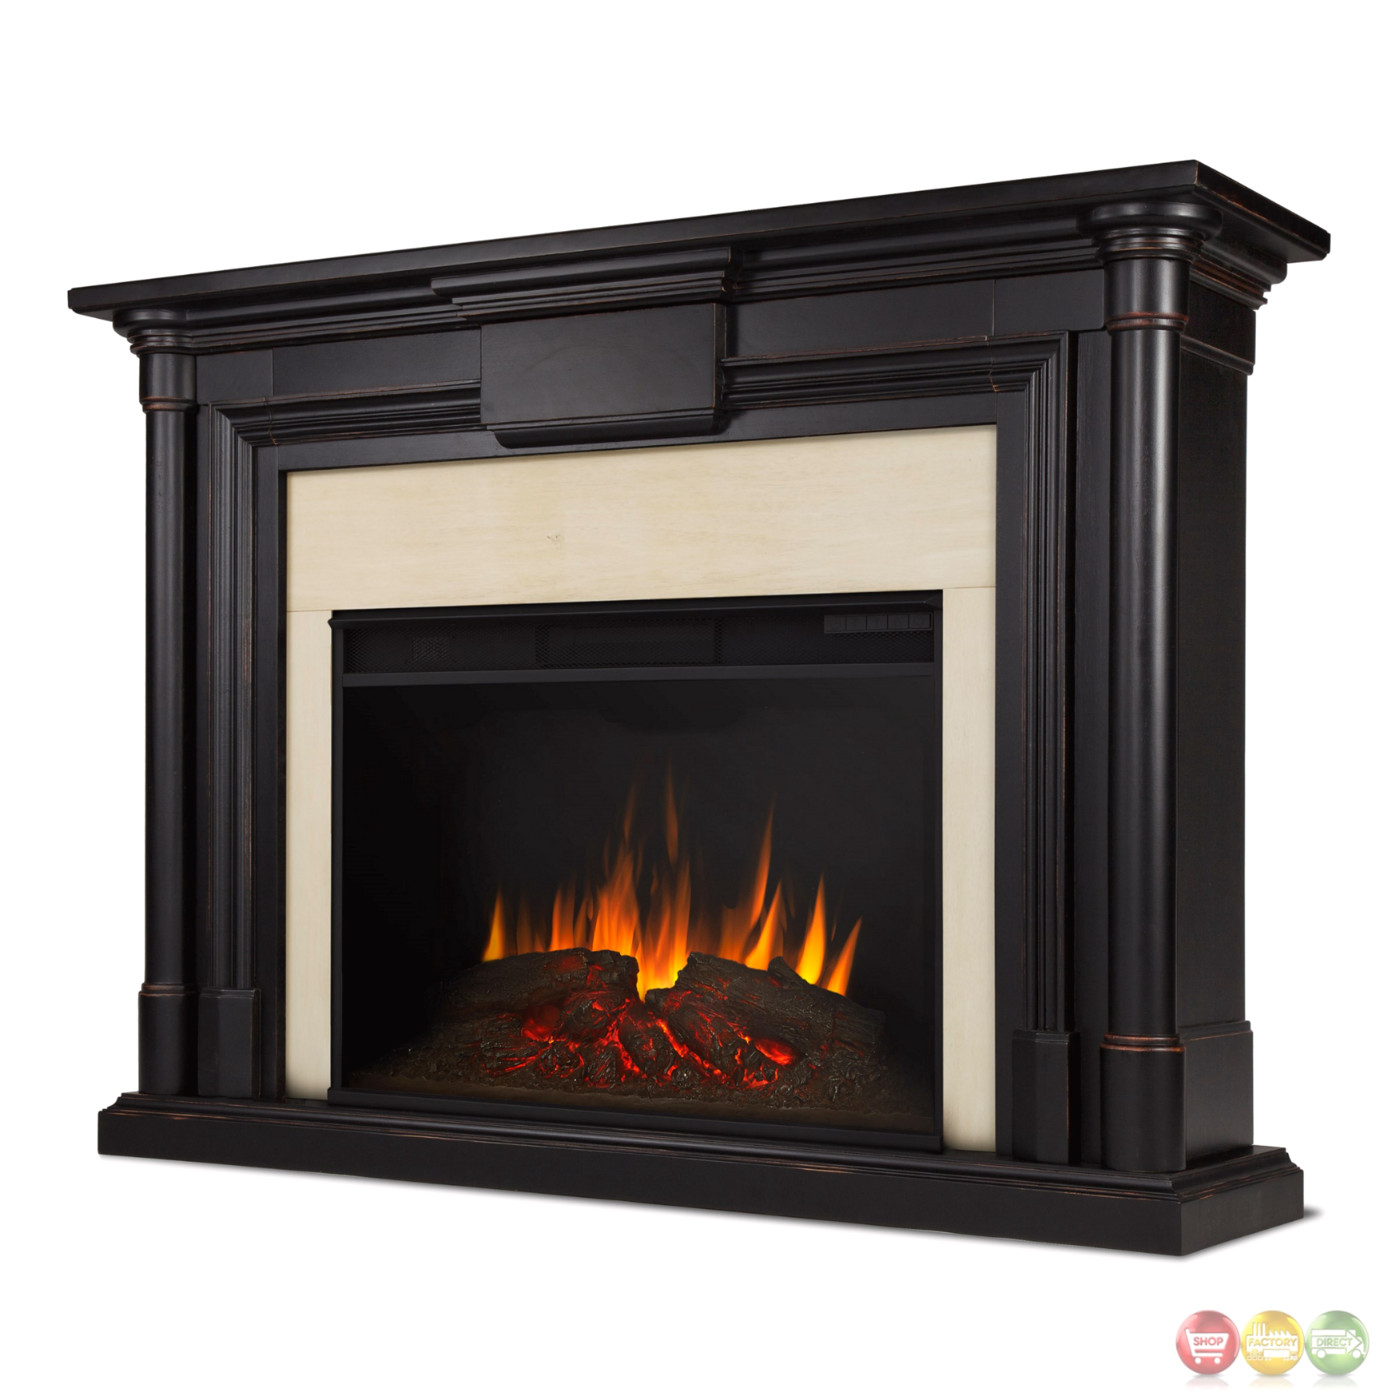 Maxwell Grand Vivid Led Electric Fireplace In Black